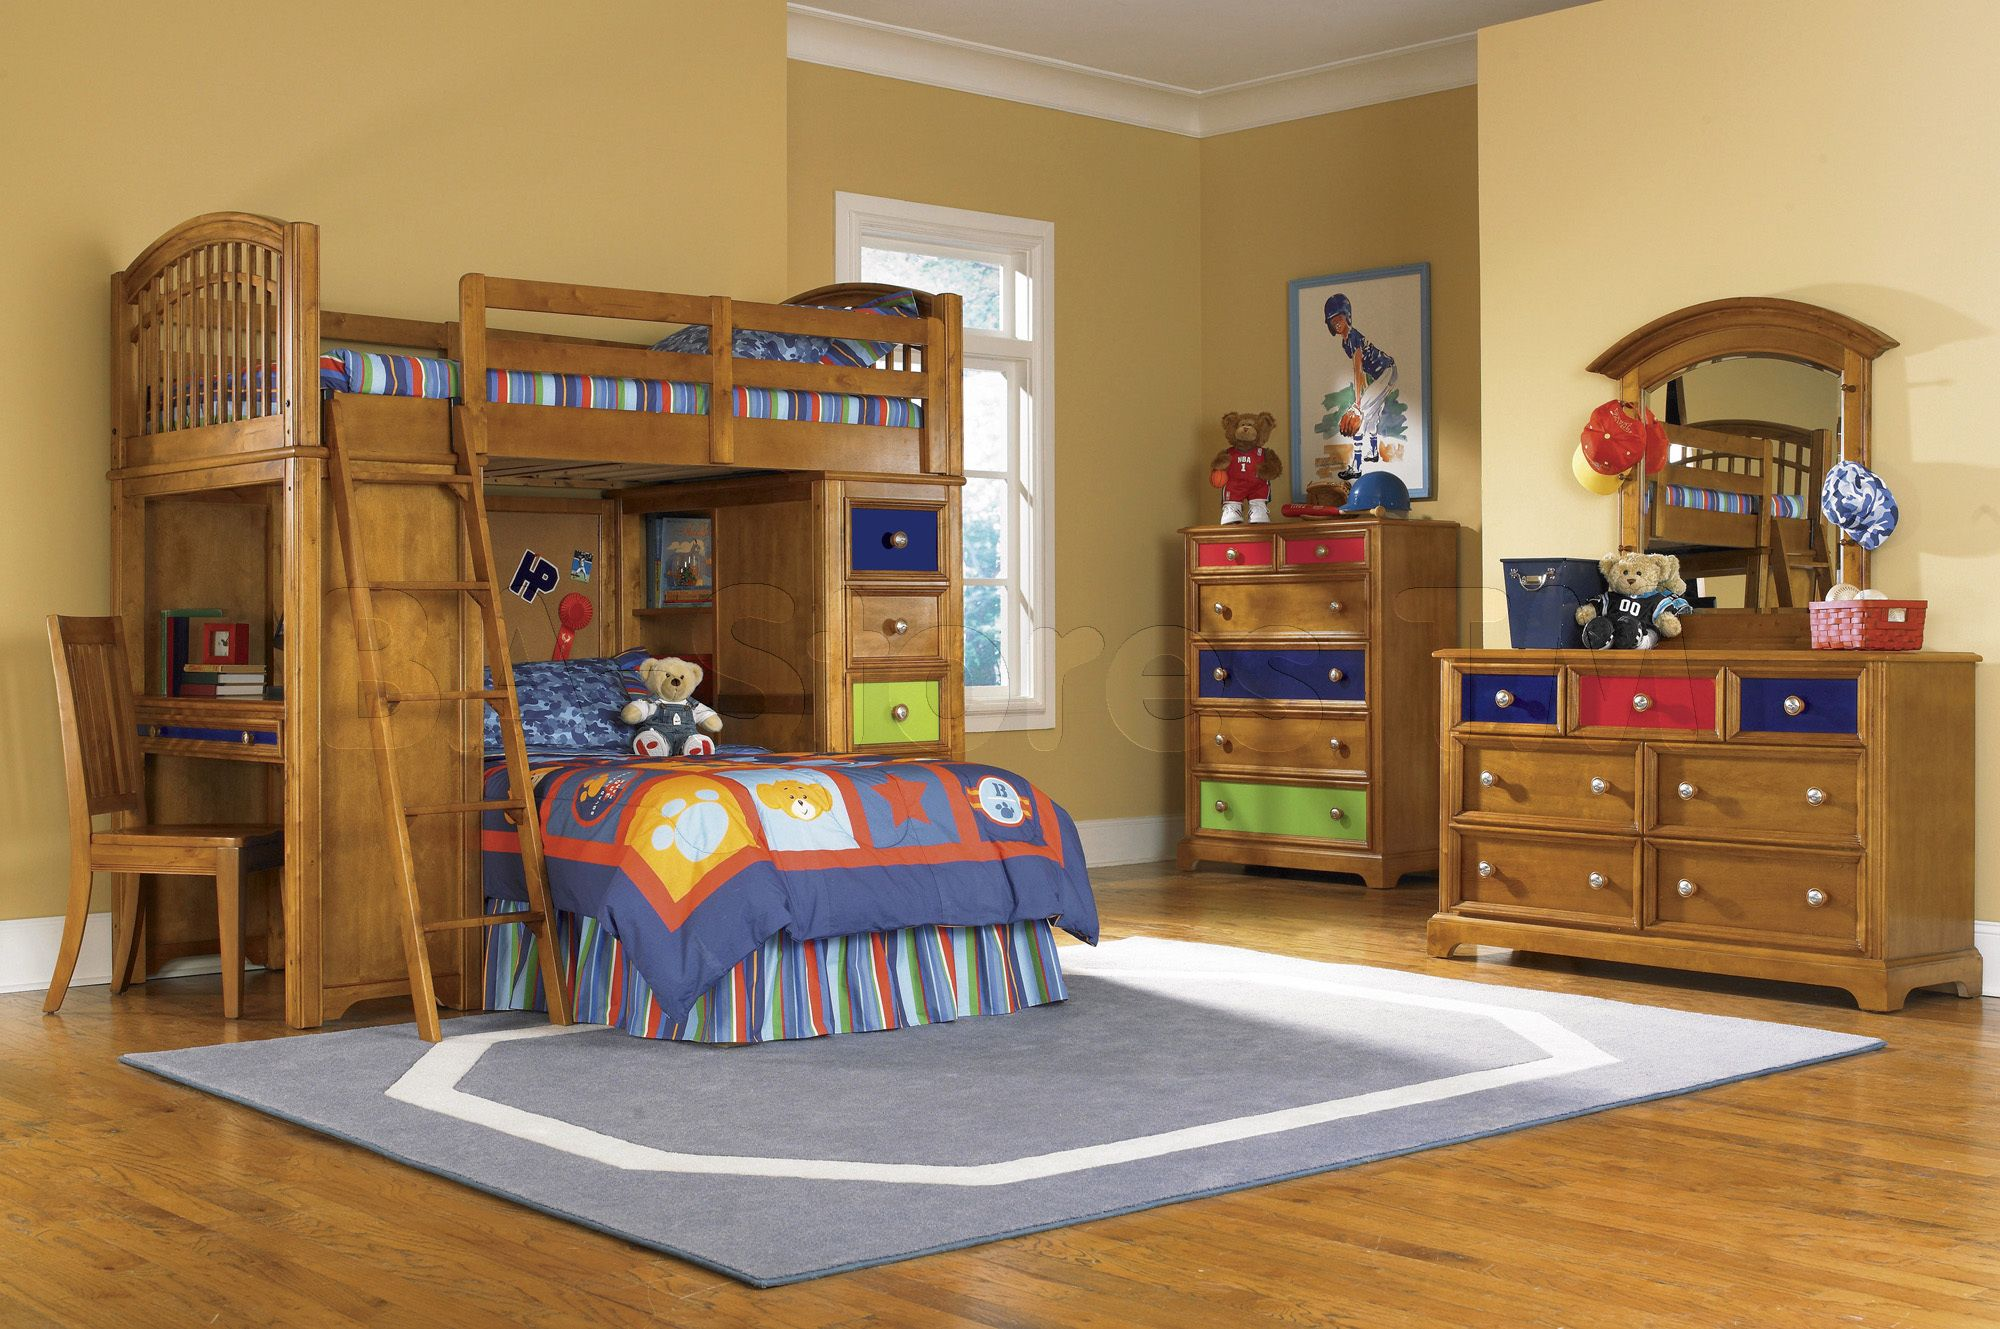 Child Bedroom Set Children Bedroom Sets For Maximum Bed Time Home Decorating Ideas Kids Furniture Pinterest Bedrooms Teen Bedroom Sets And Kids Room